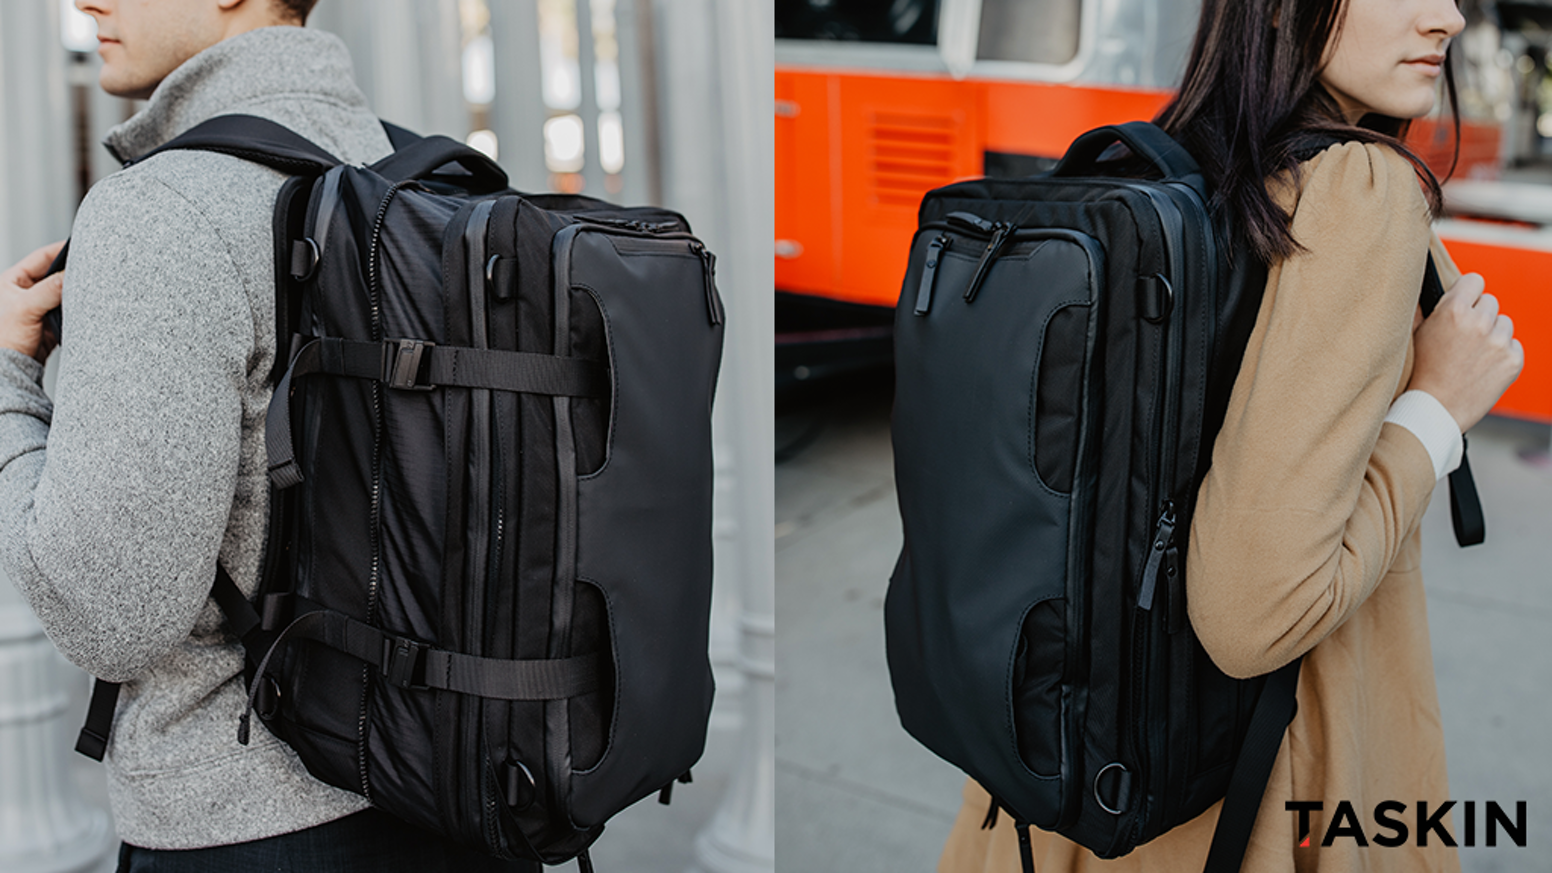 20L/30L/40L | Backpack/Shoulder/Hand Bag |  9 Practical Variations | The ONE Bag To Travel With, The Taskin ONE